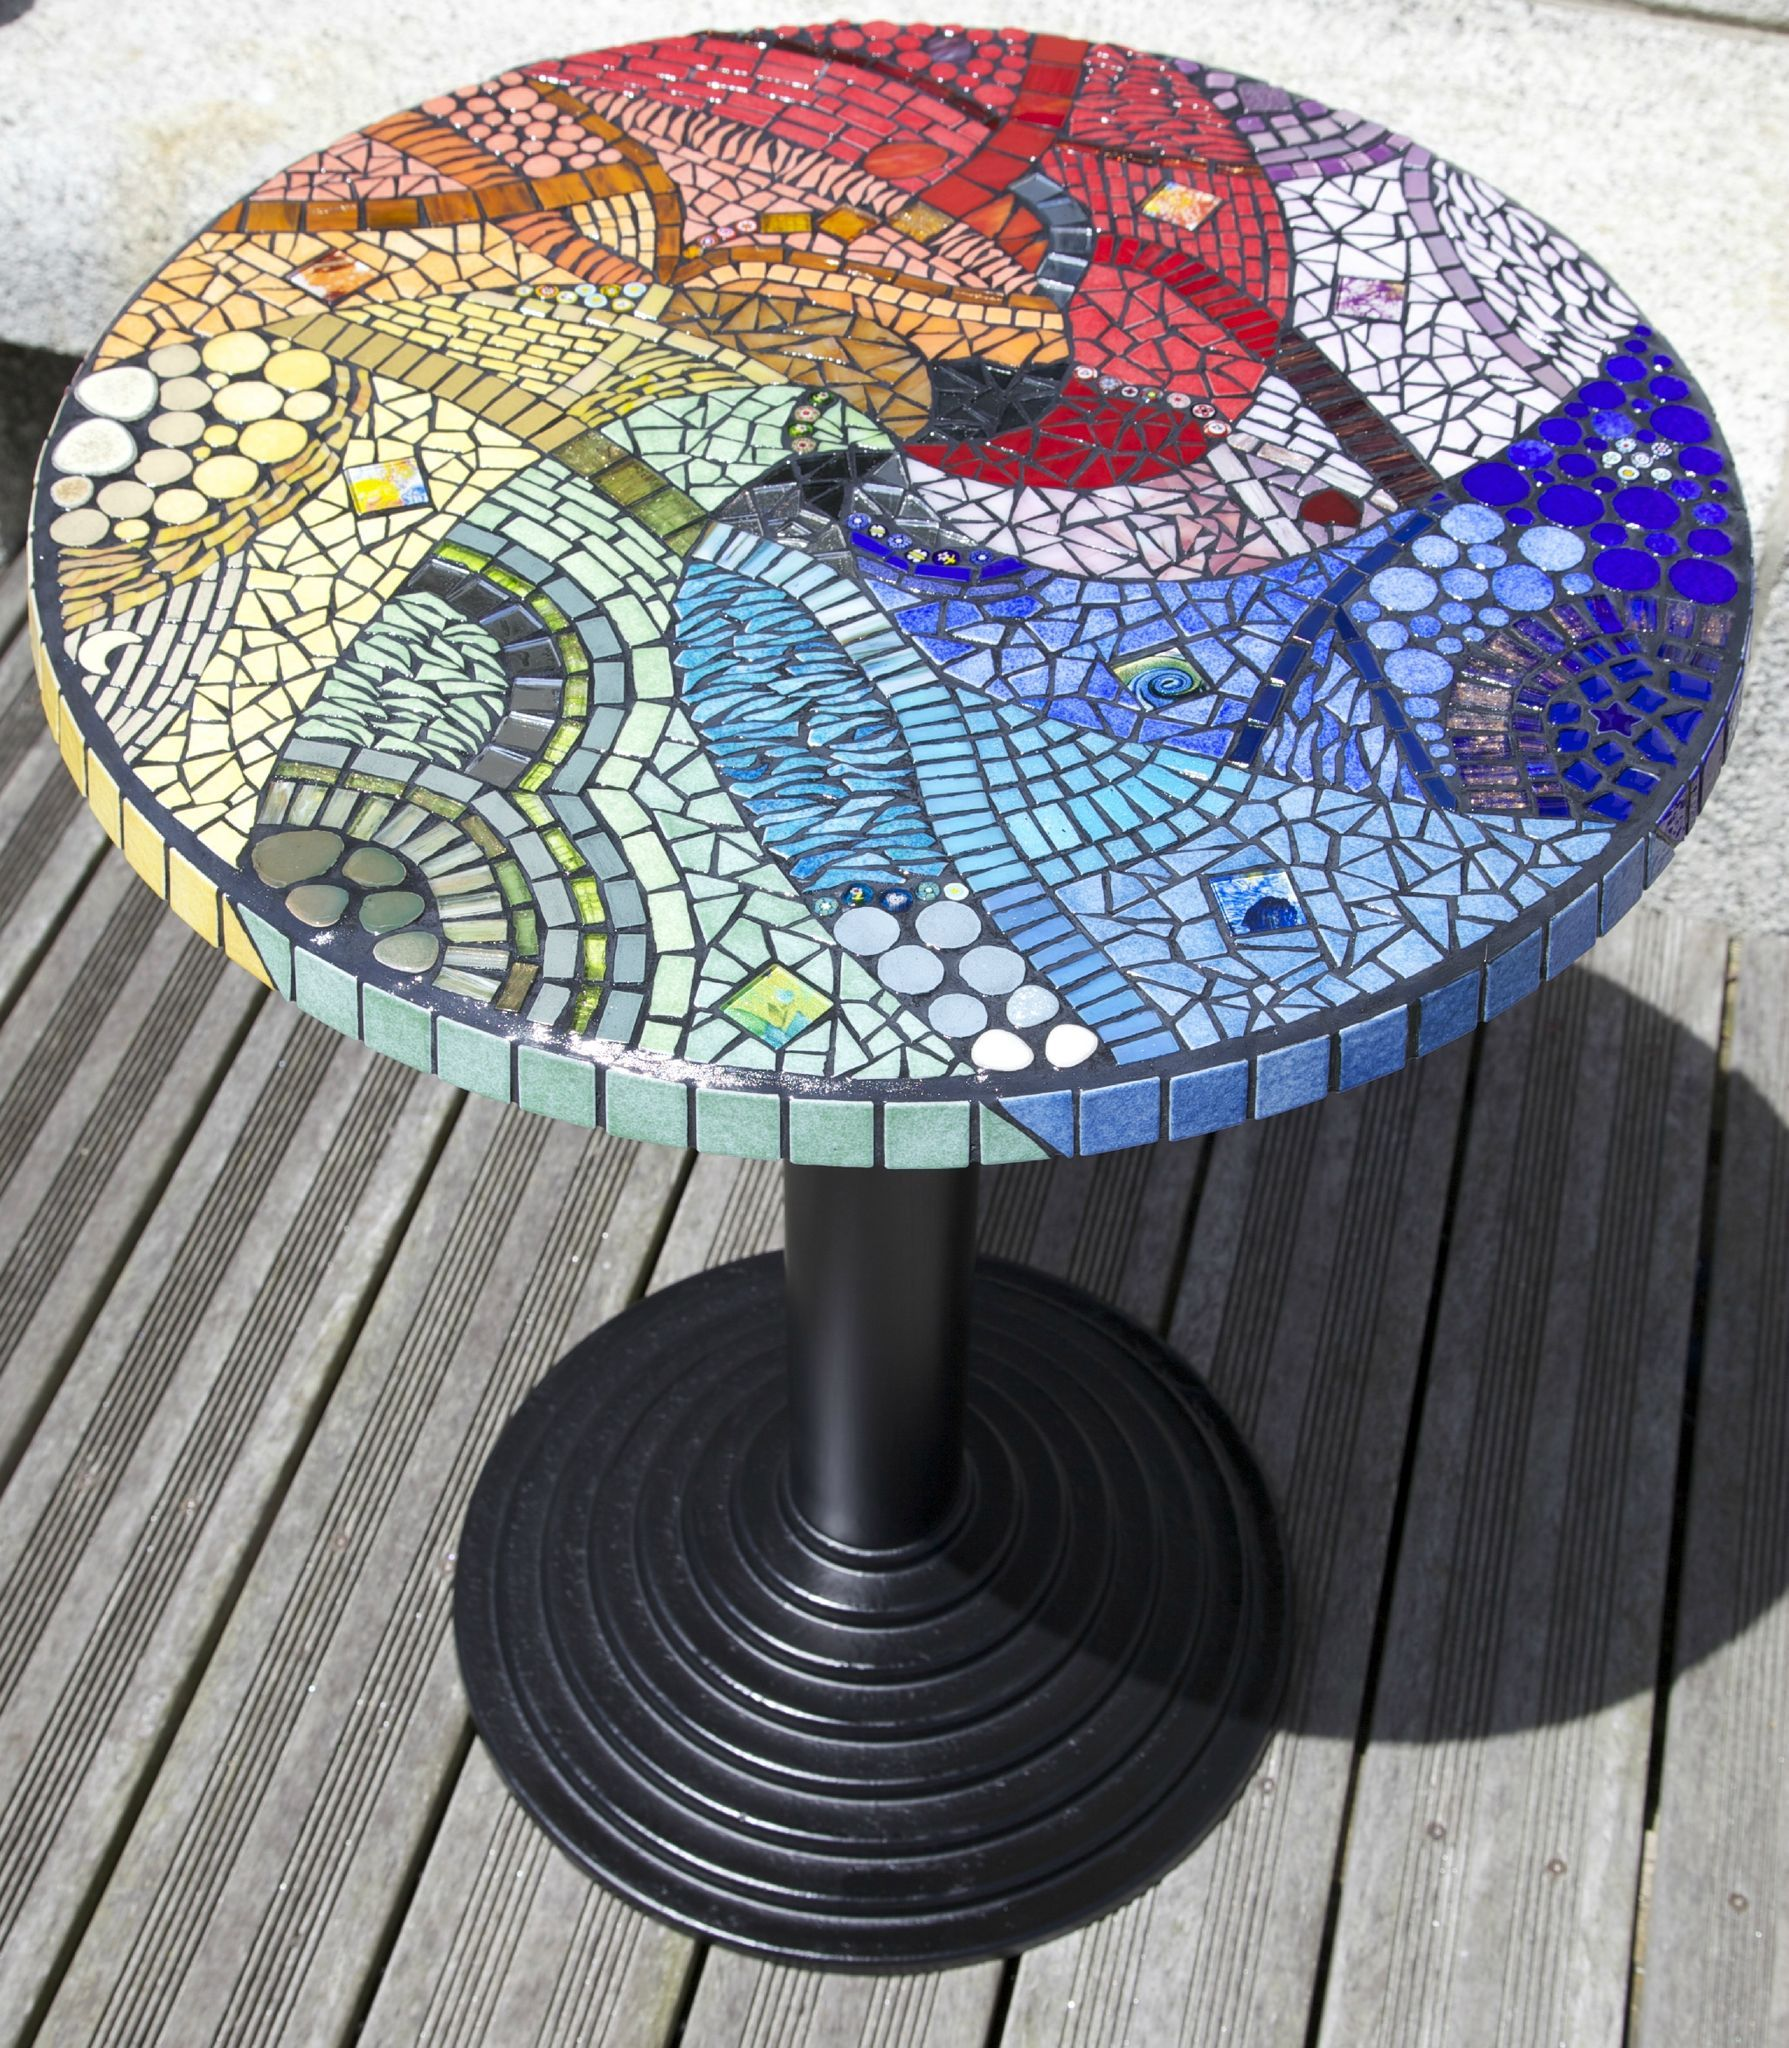 Table ronde mosaique | Projet table | Pinterest | Table ronde ...